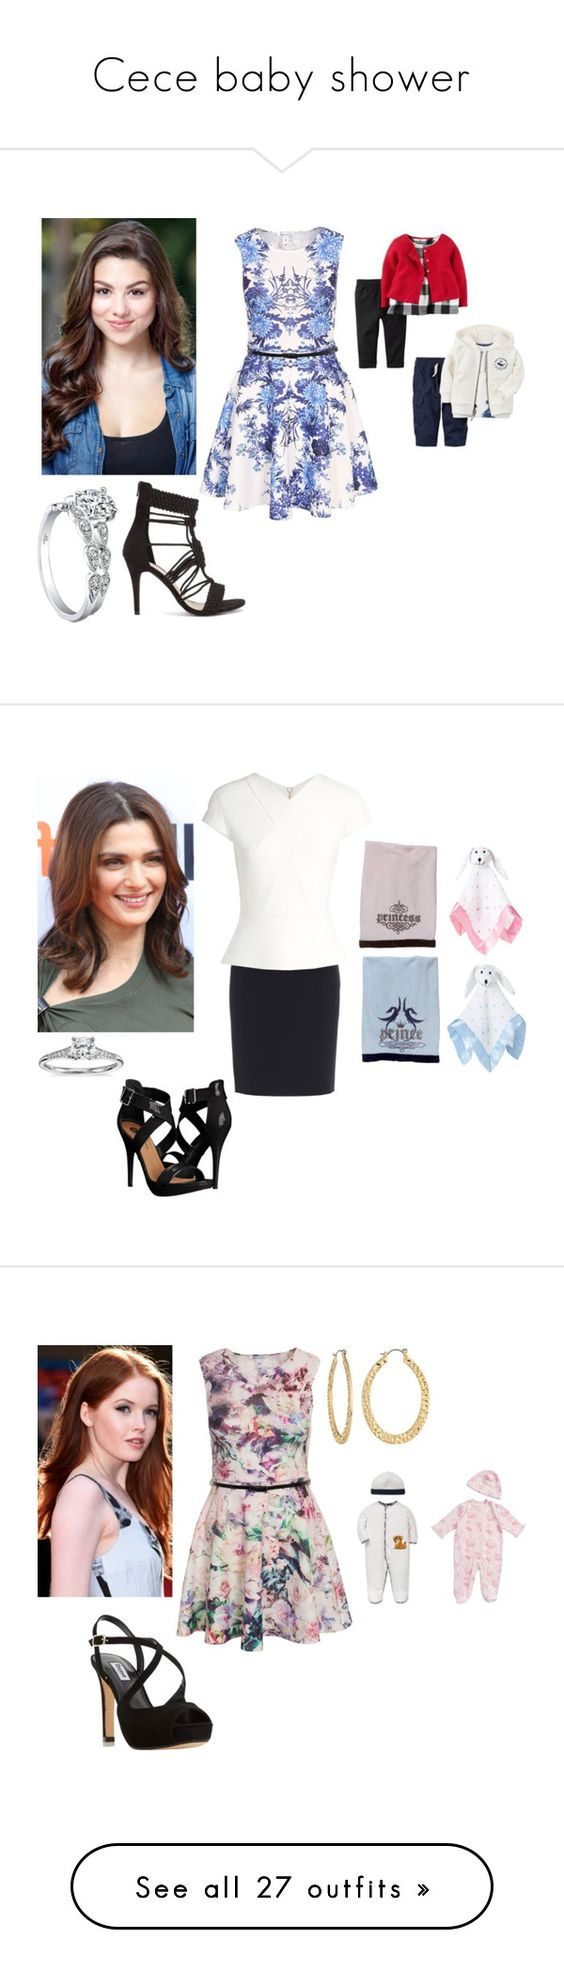 """""""Cece baby shower"""" by charmedgreys ❤ liked on Polyvore featuring Nly Shoes, Boutique Moschino, Roland Mouret, Michael Antonio, Blue Nile, Dune, Fragments, Lord & Taylor, baby and kids"""